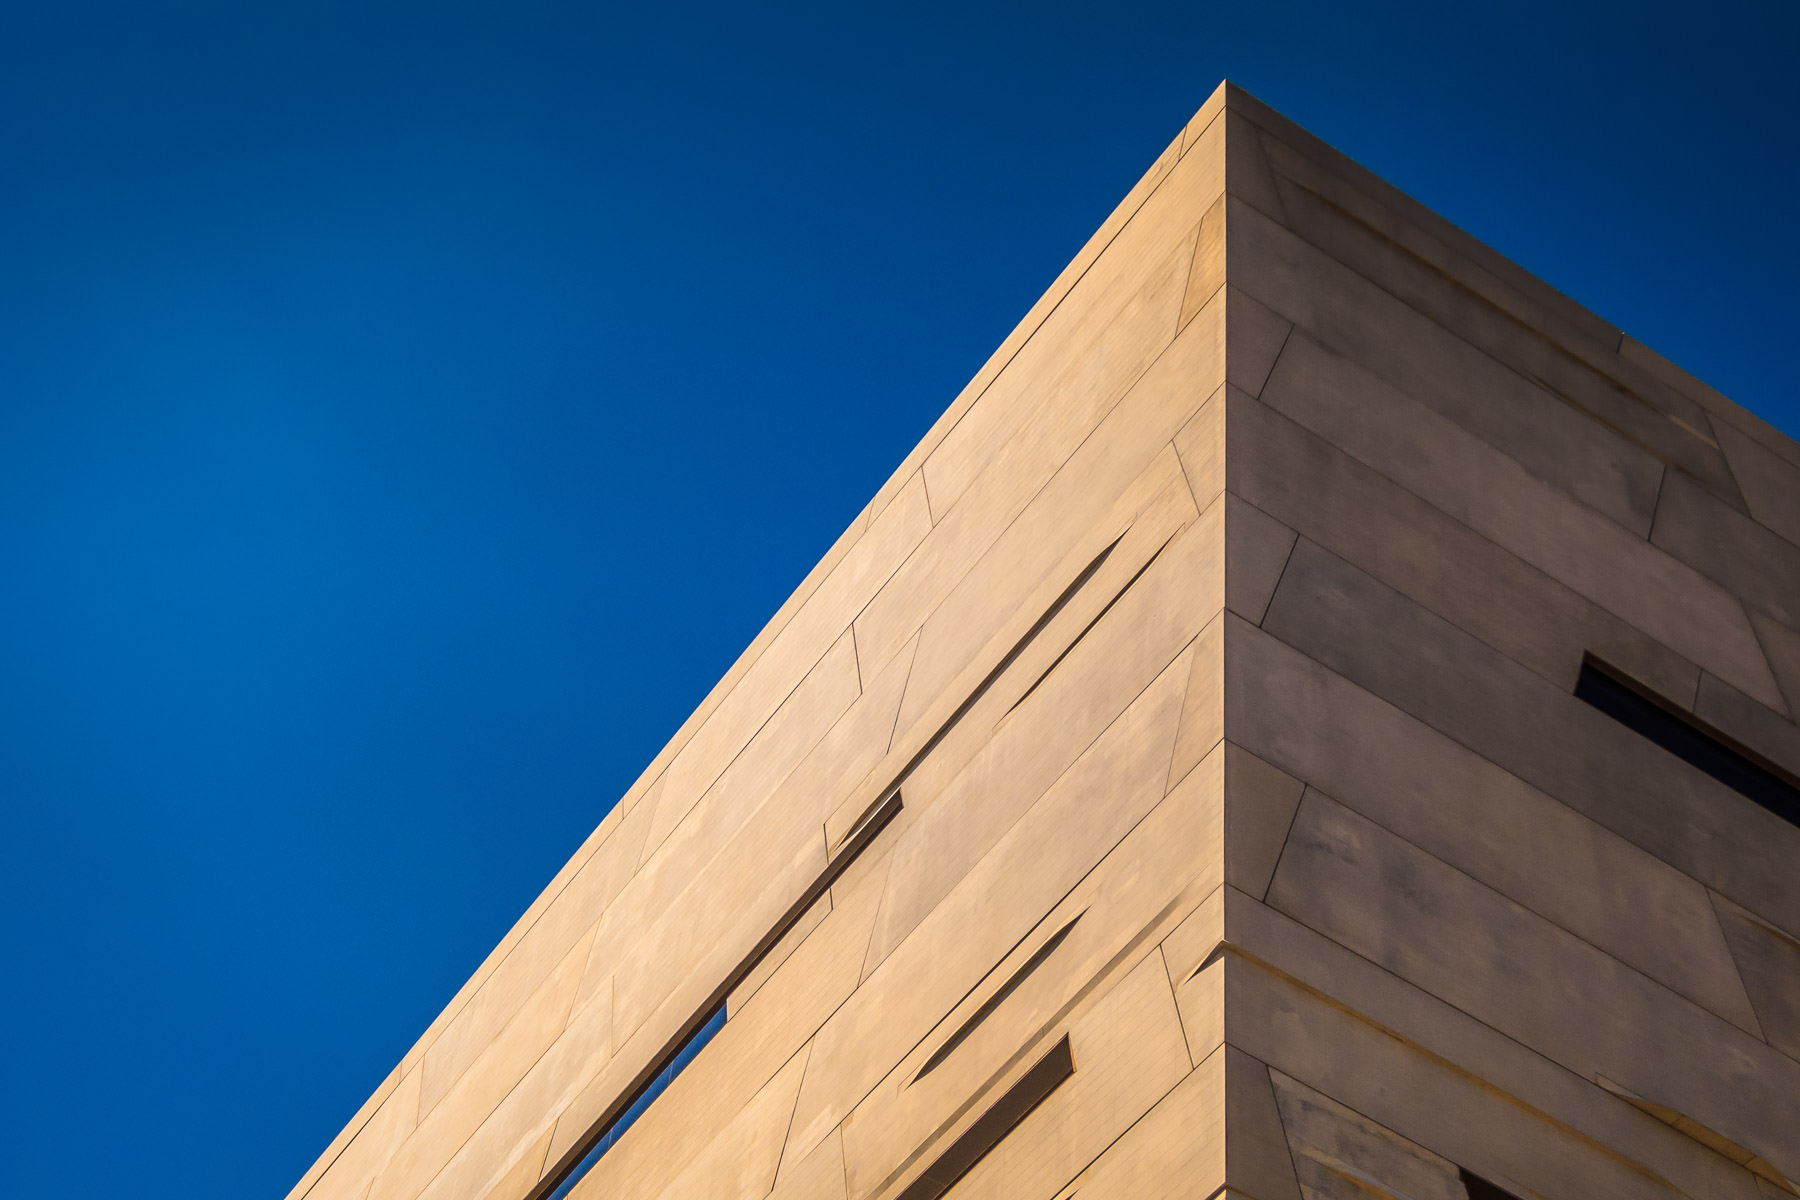 An abstract architectural study of the exterior of Dallas' Perot Museum of Nature & Science.